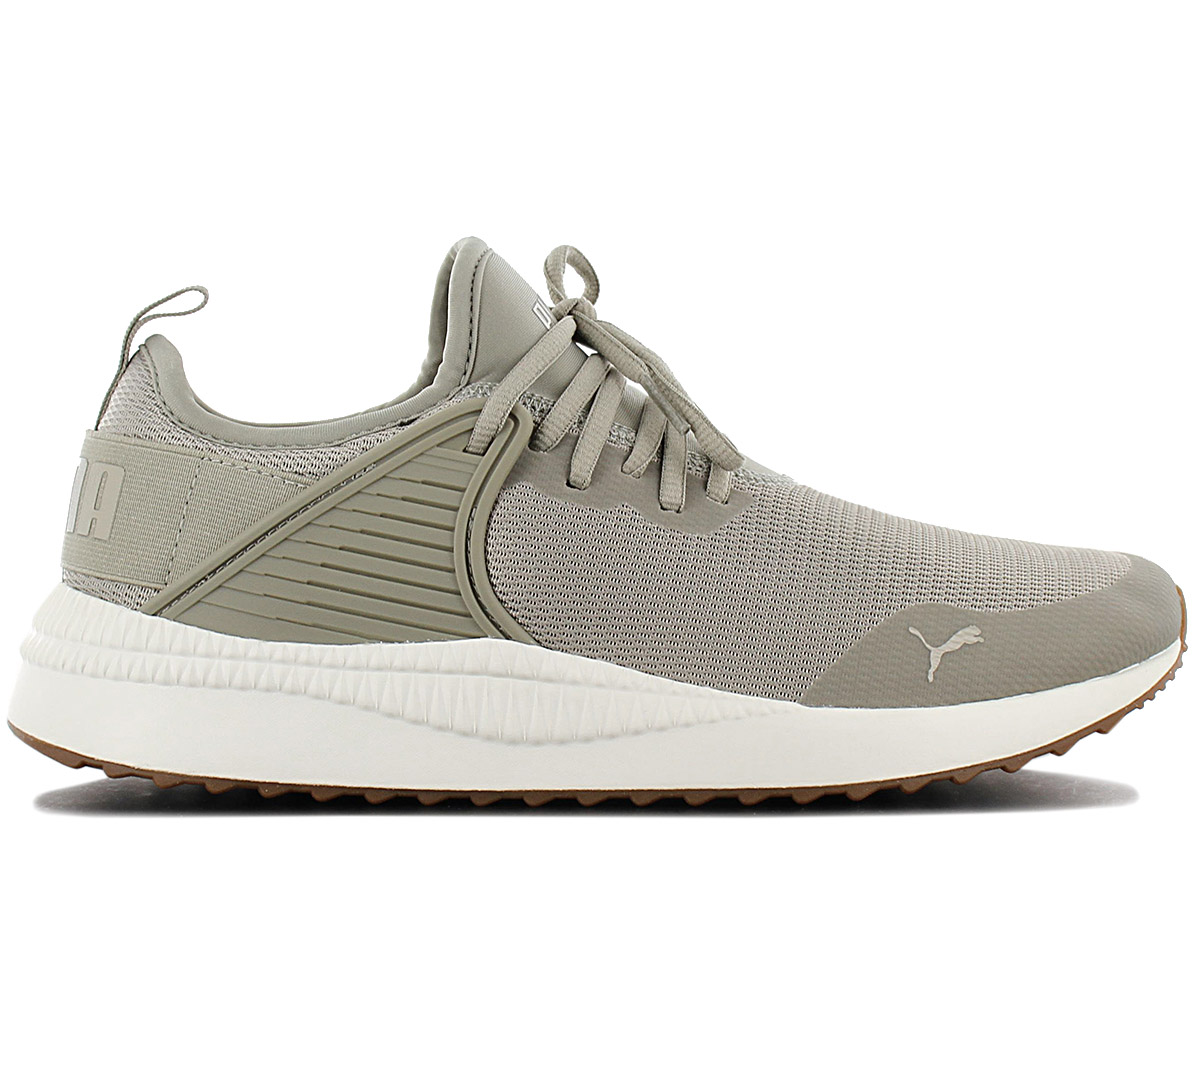 3142488670 Details about Puma Pacer next Cage Men's Sneakers 365284-06 Grey Shoes  Trainers Sport Shoes